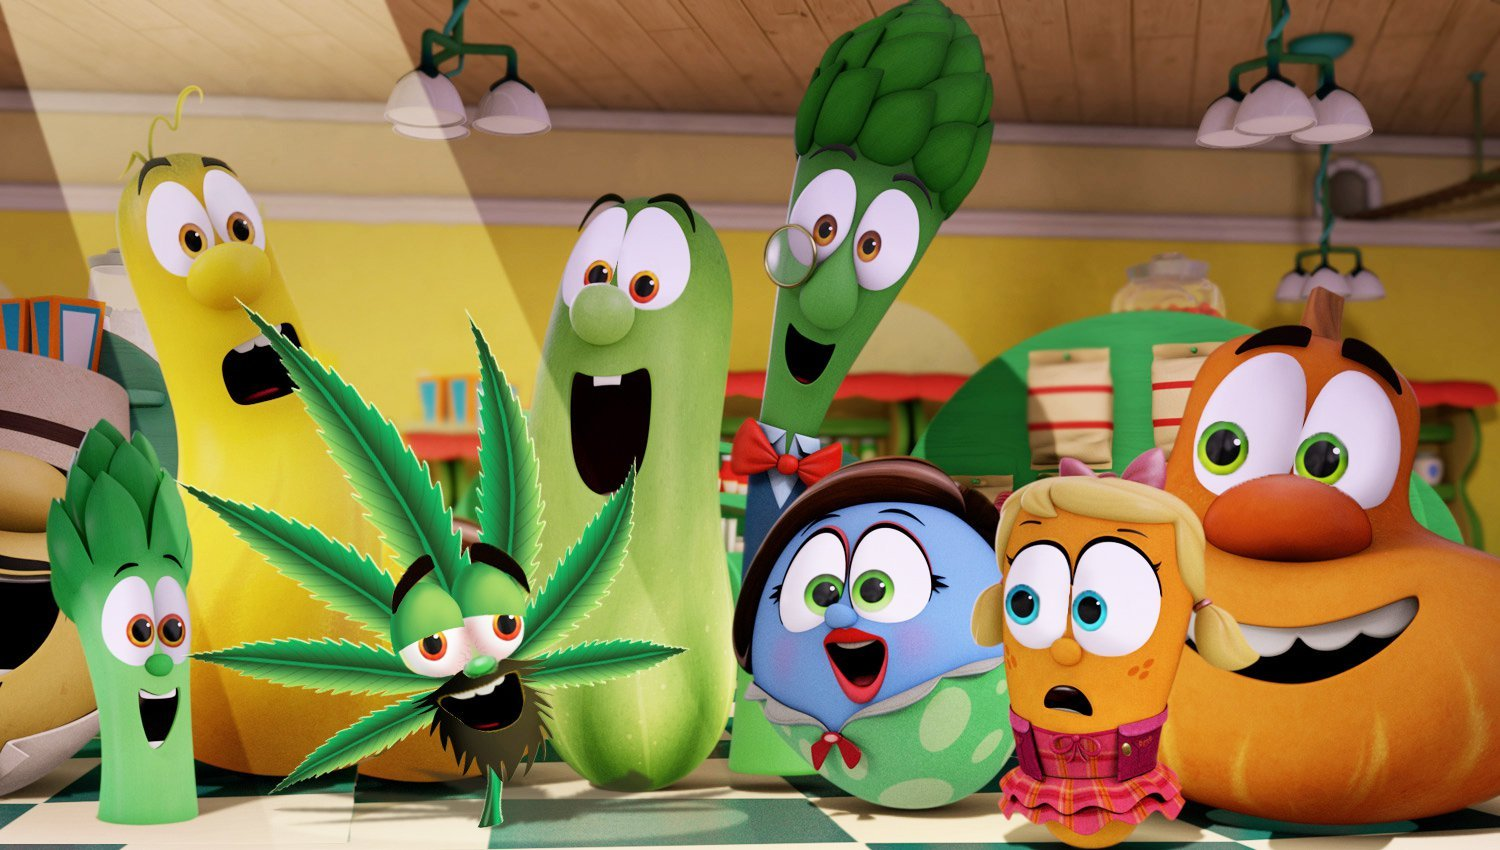 Fake Veggietales Cannabis Carl character announcement has folks on Facebook freaking out.